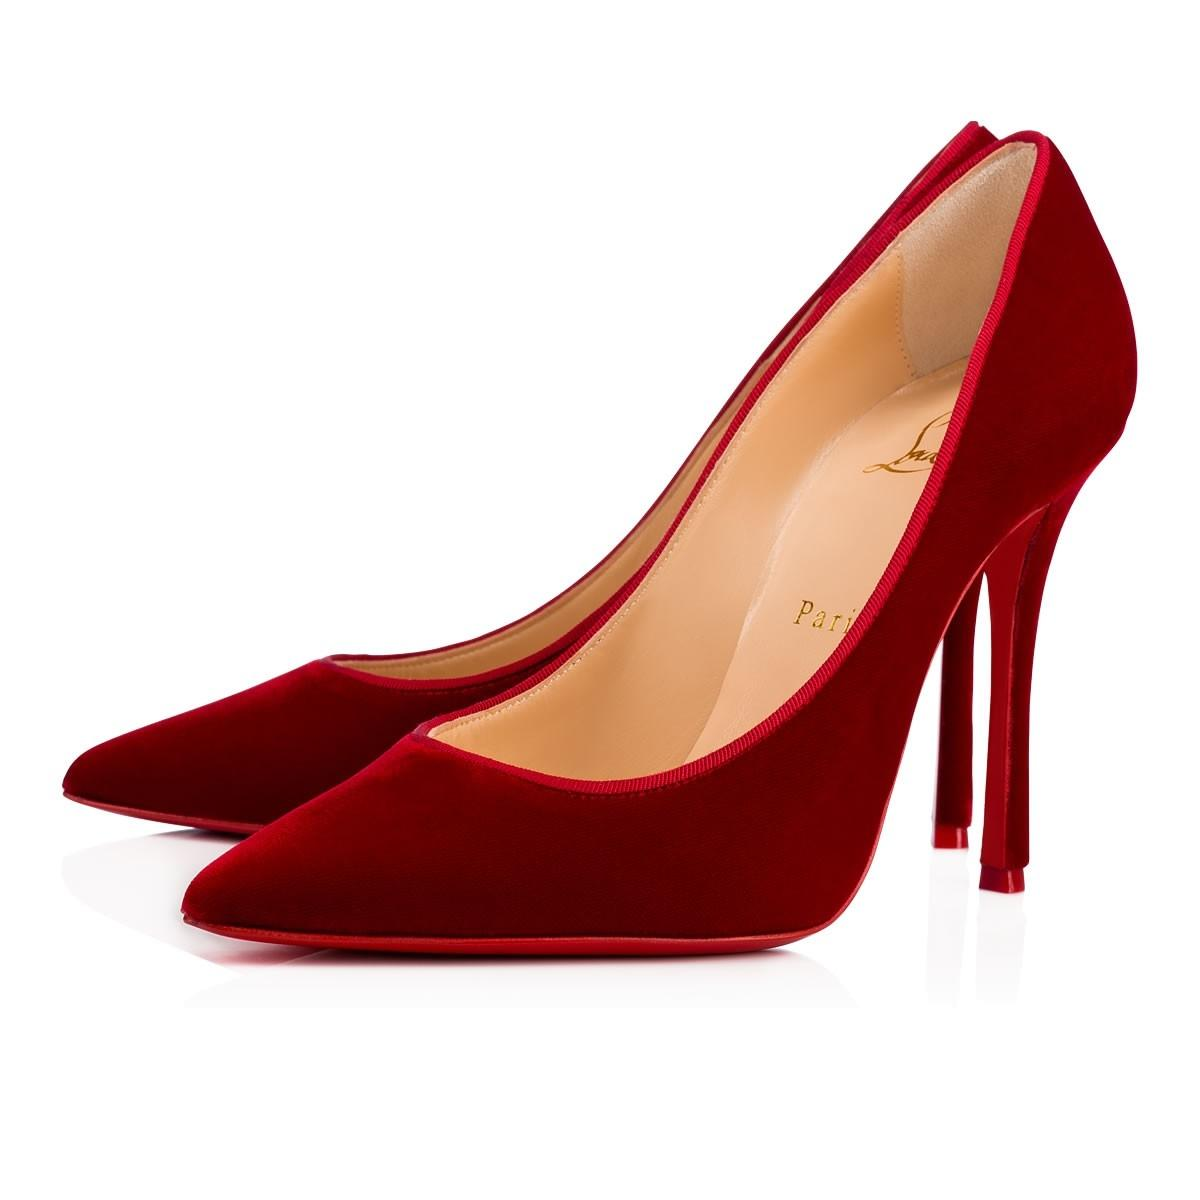 louboutin fall winter 2018 Rosso